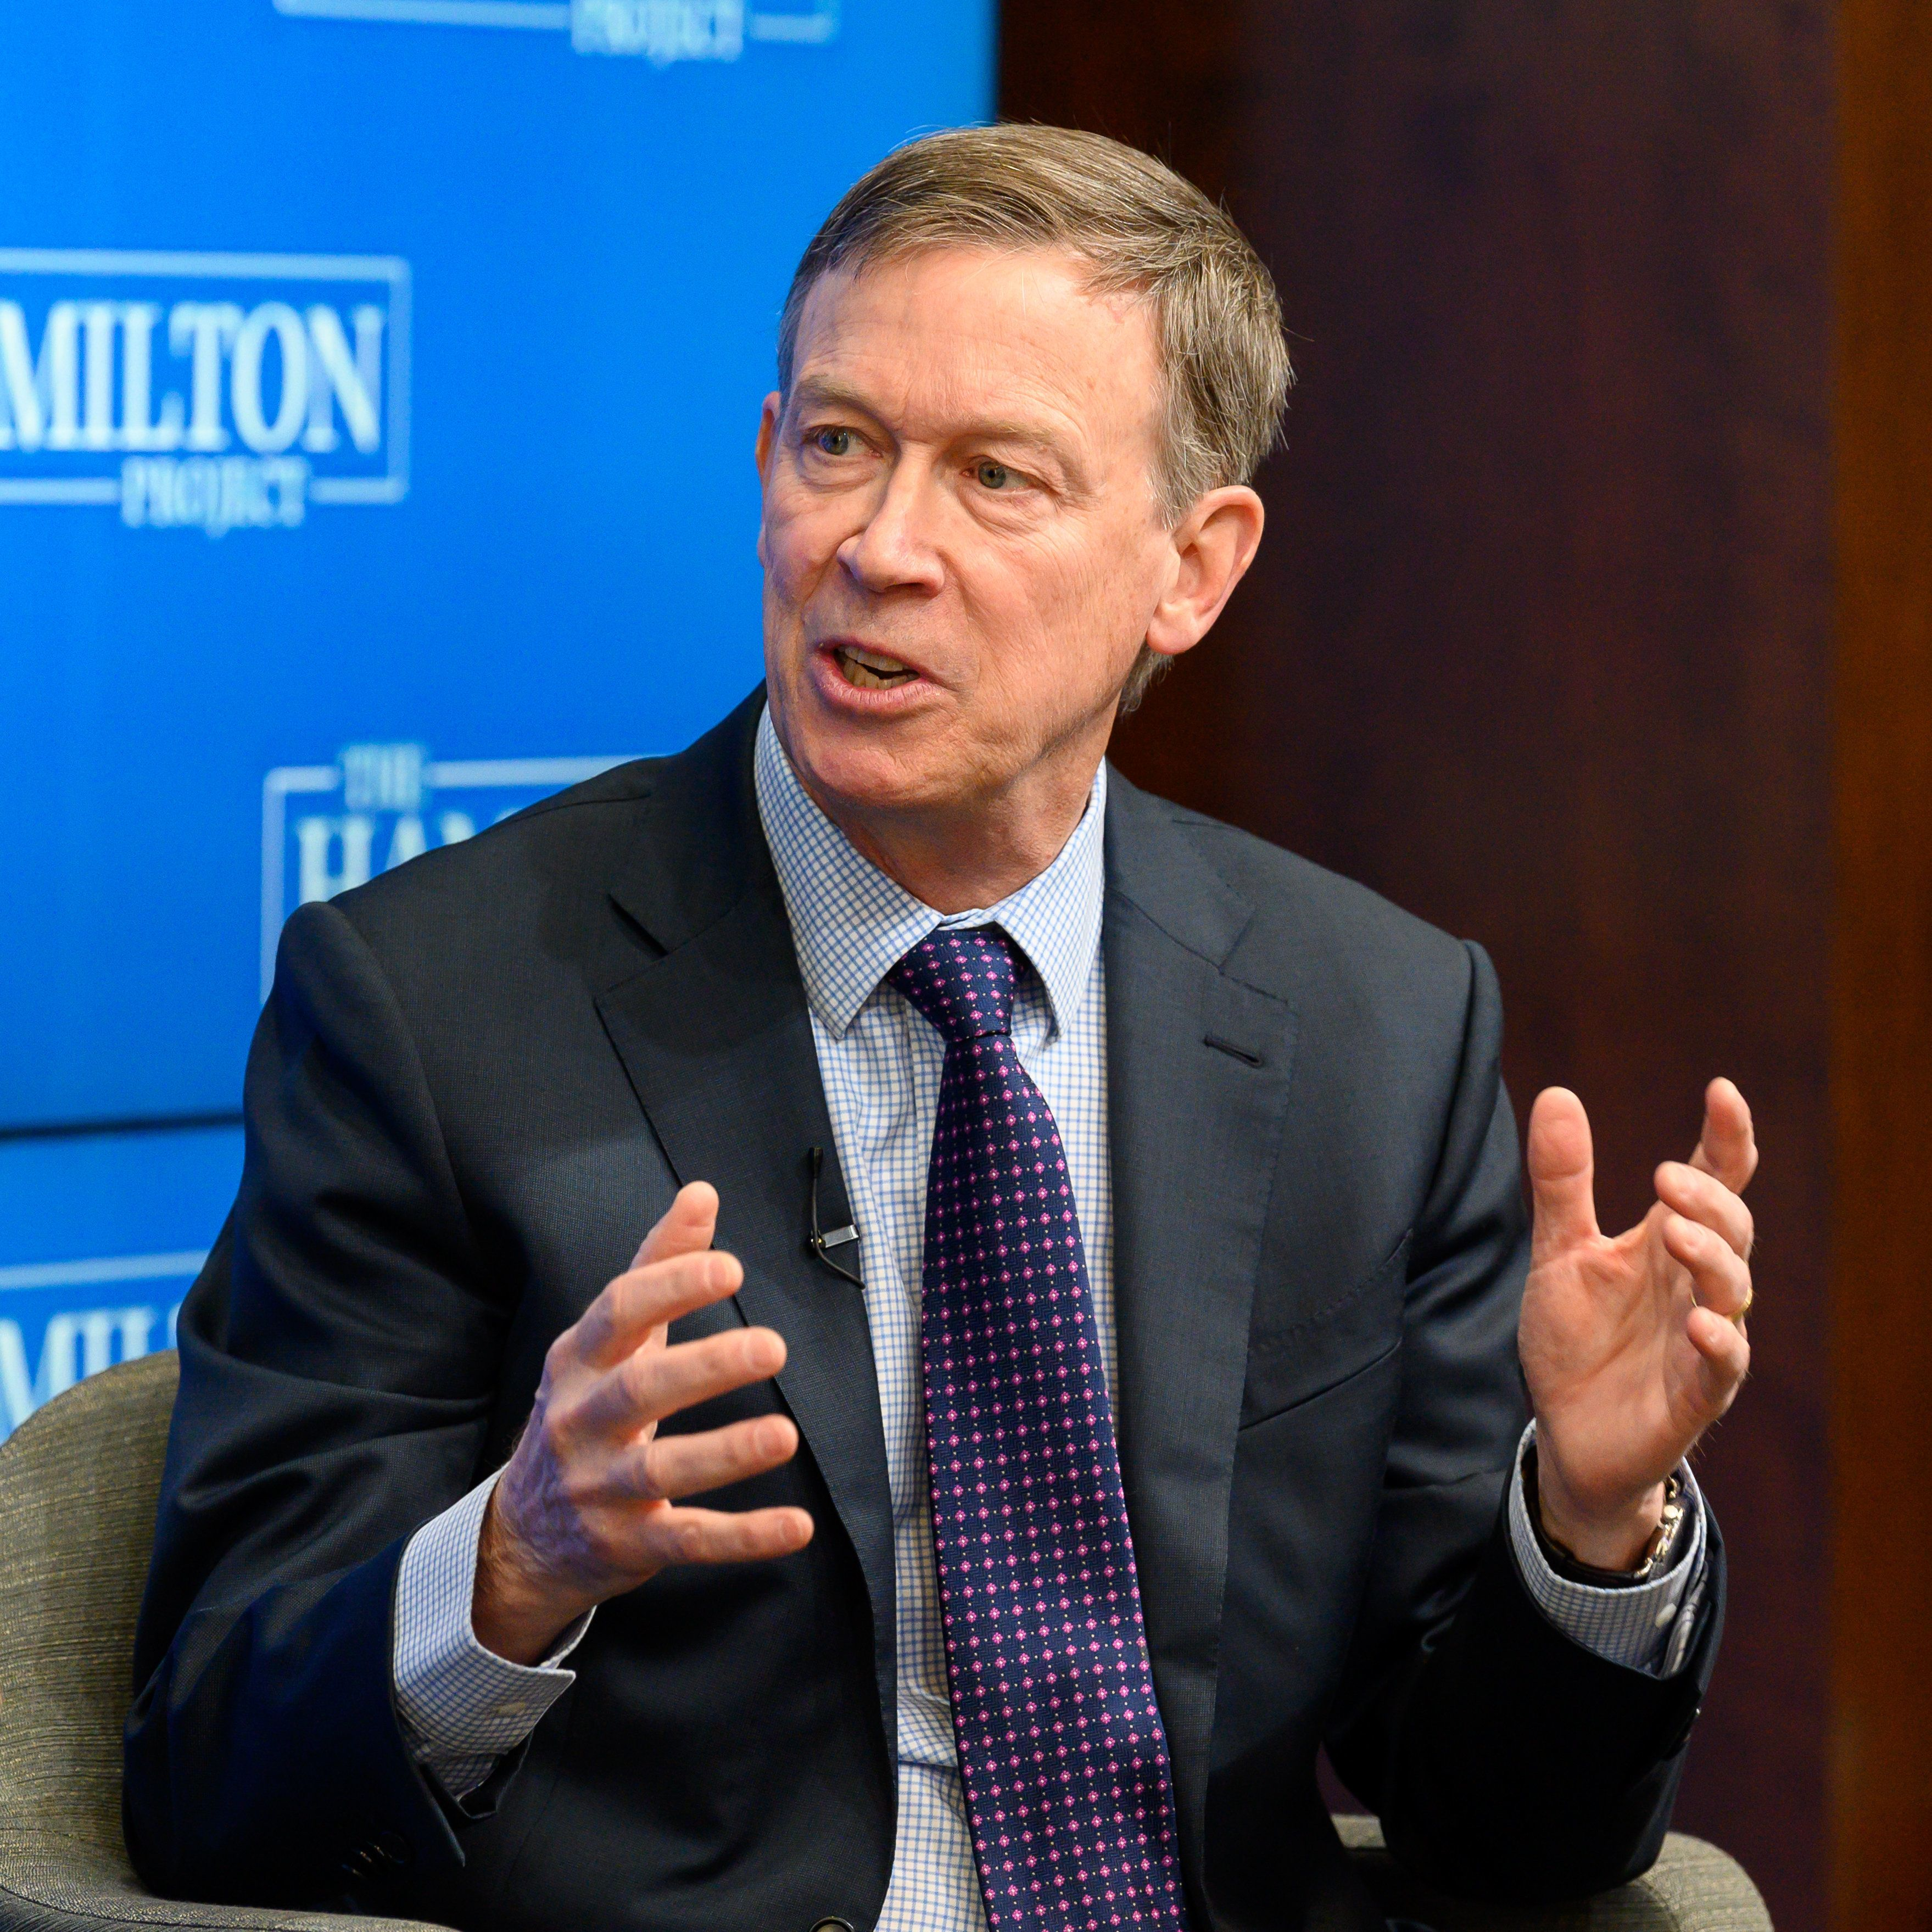 Former Colorado governor John Hickenlooper joins race for president